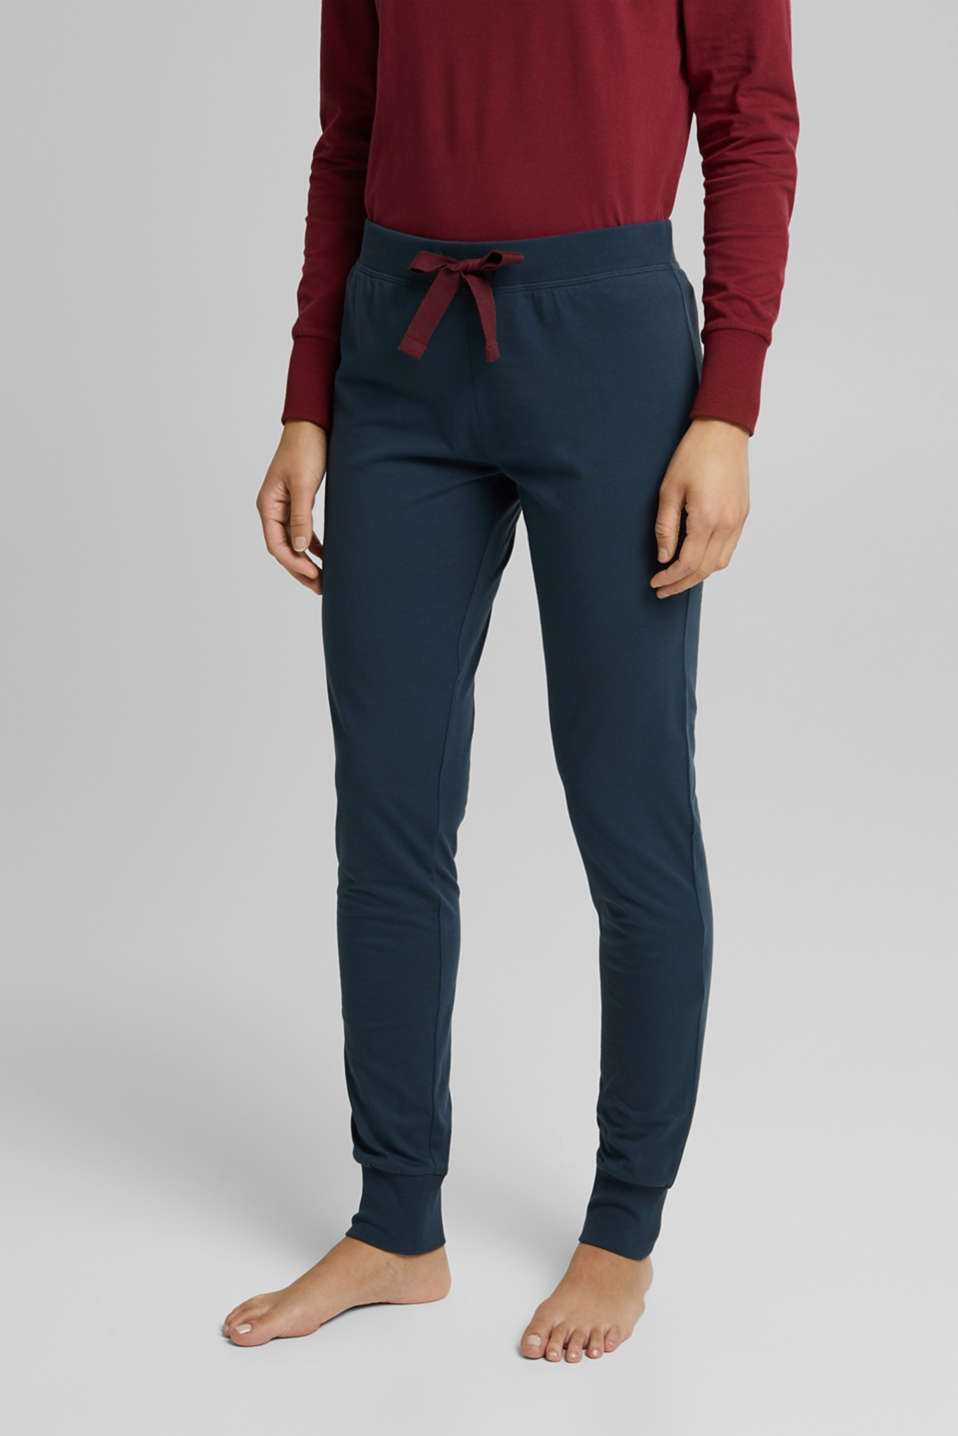 Esprit - Pyjama bottoms in 100% organic cotton